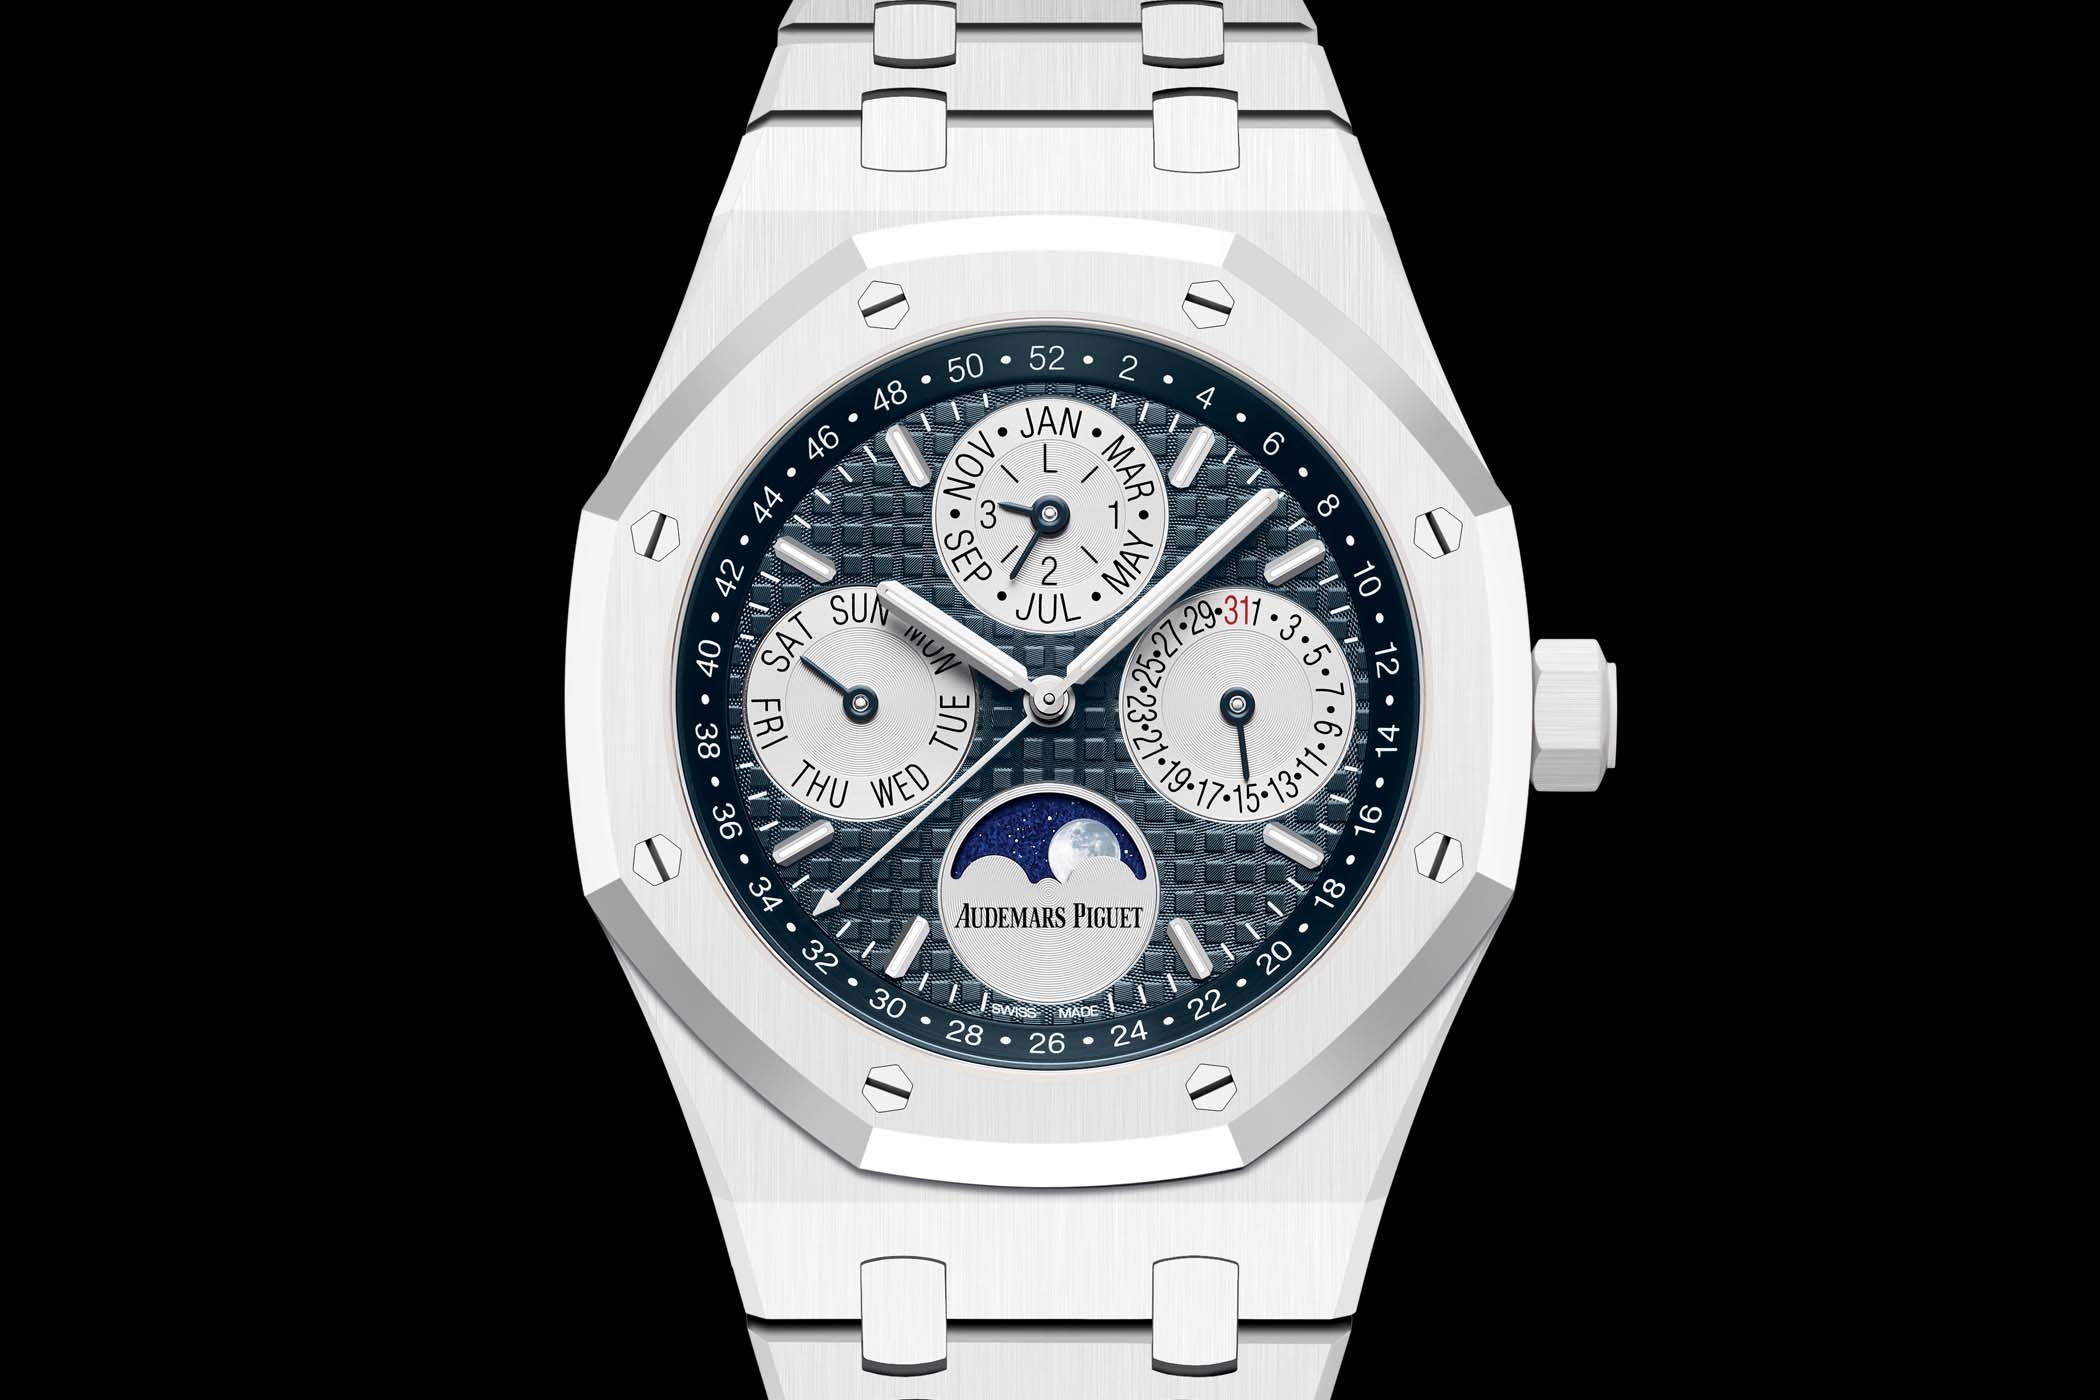 Introducing - Audemars Piguet Royal Oak Perpetual Calendar White Ceramic  26579CB.OO.1225CB.01 (Specs & Price)